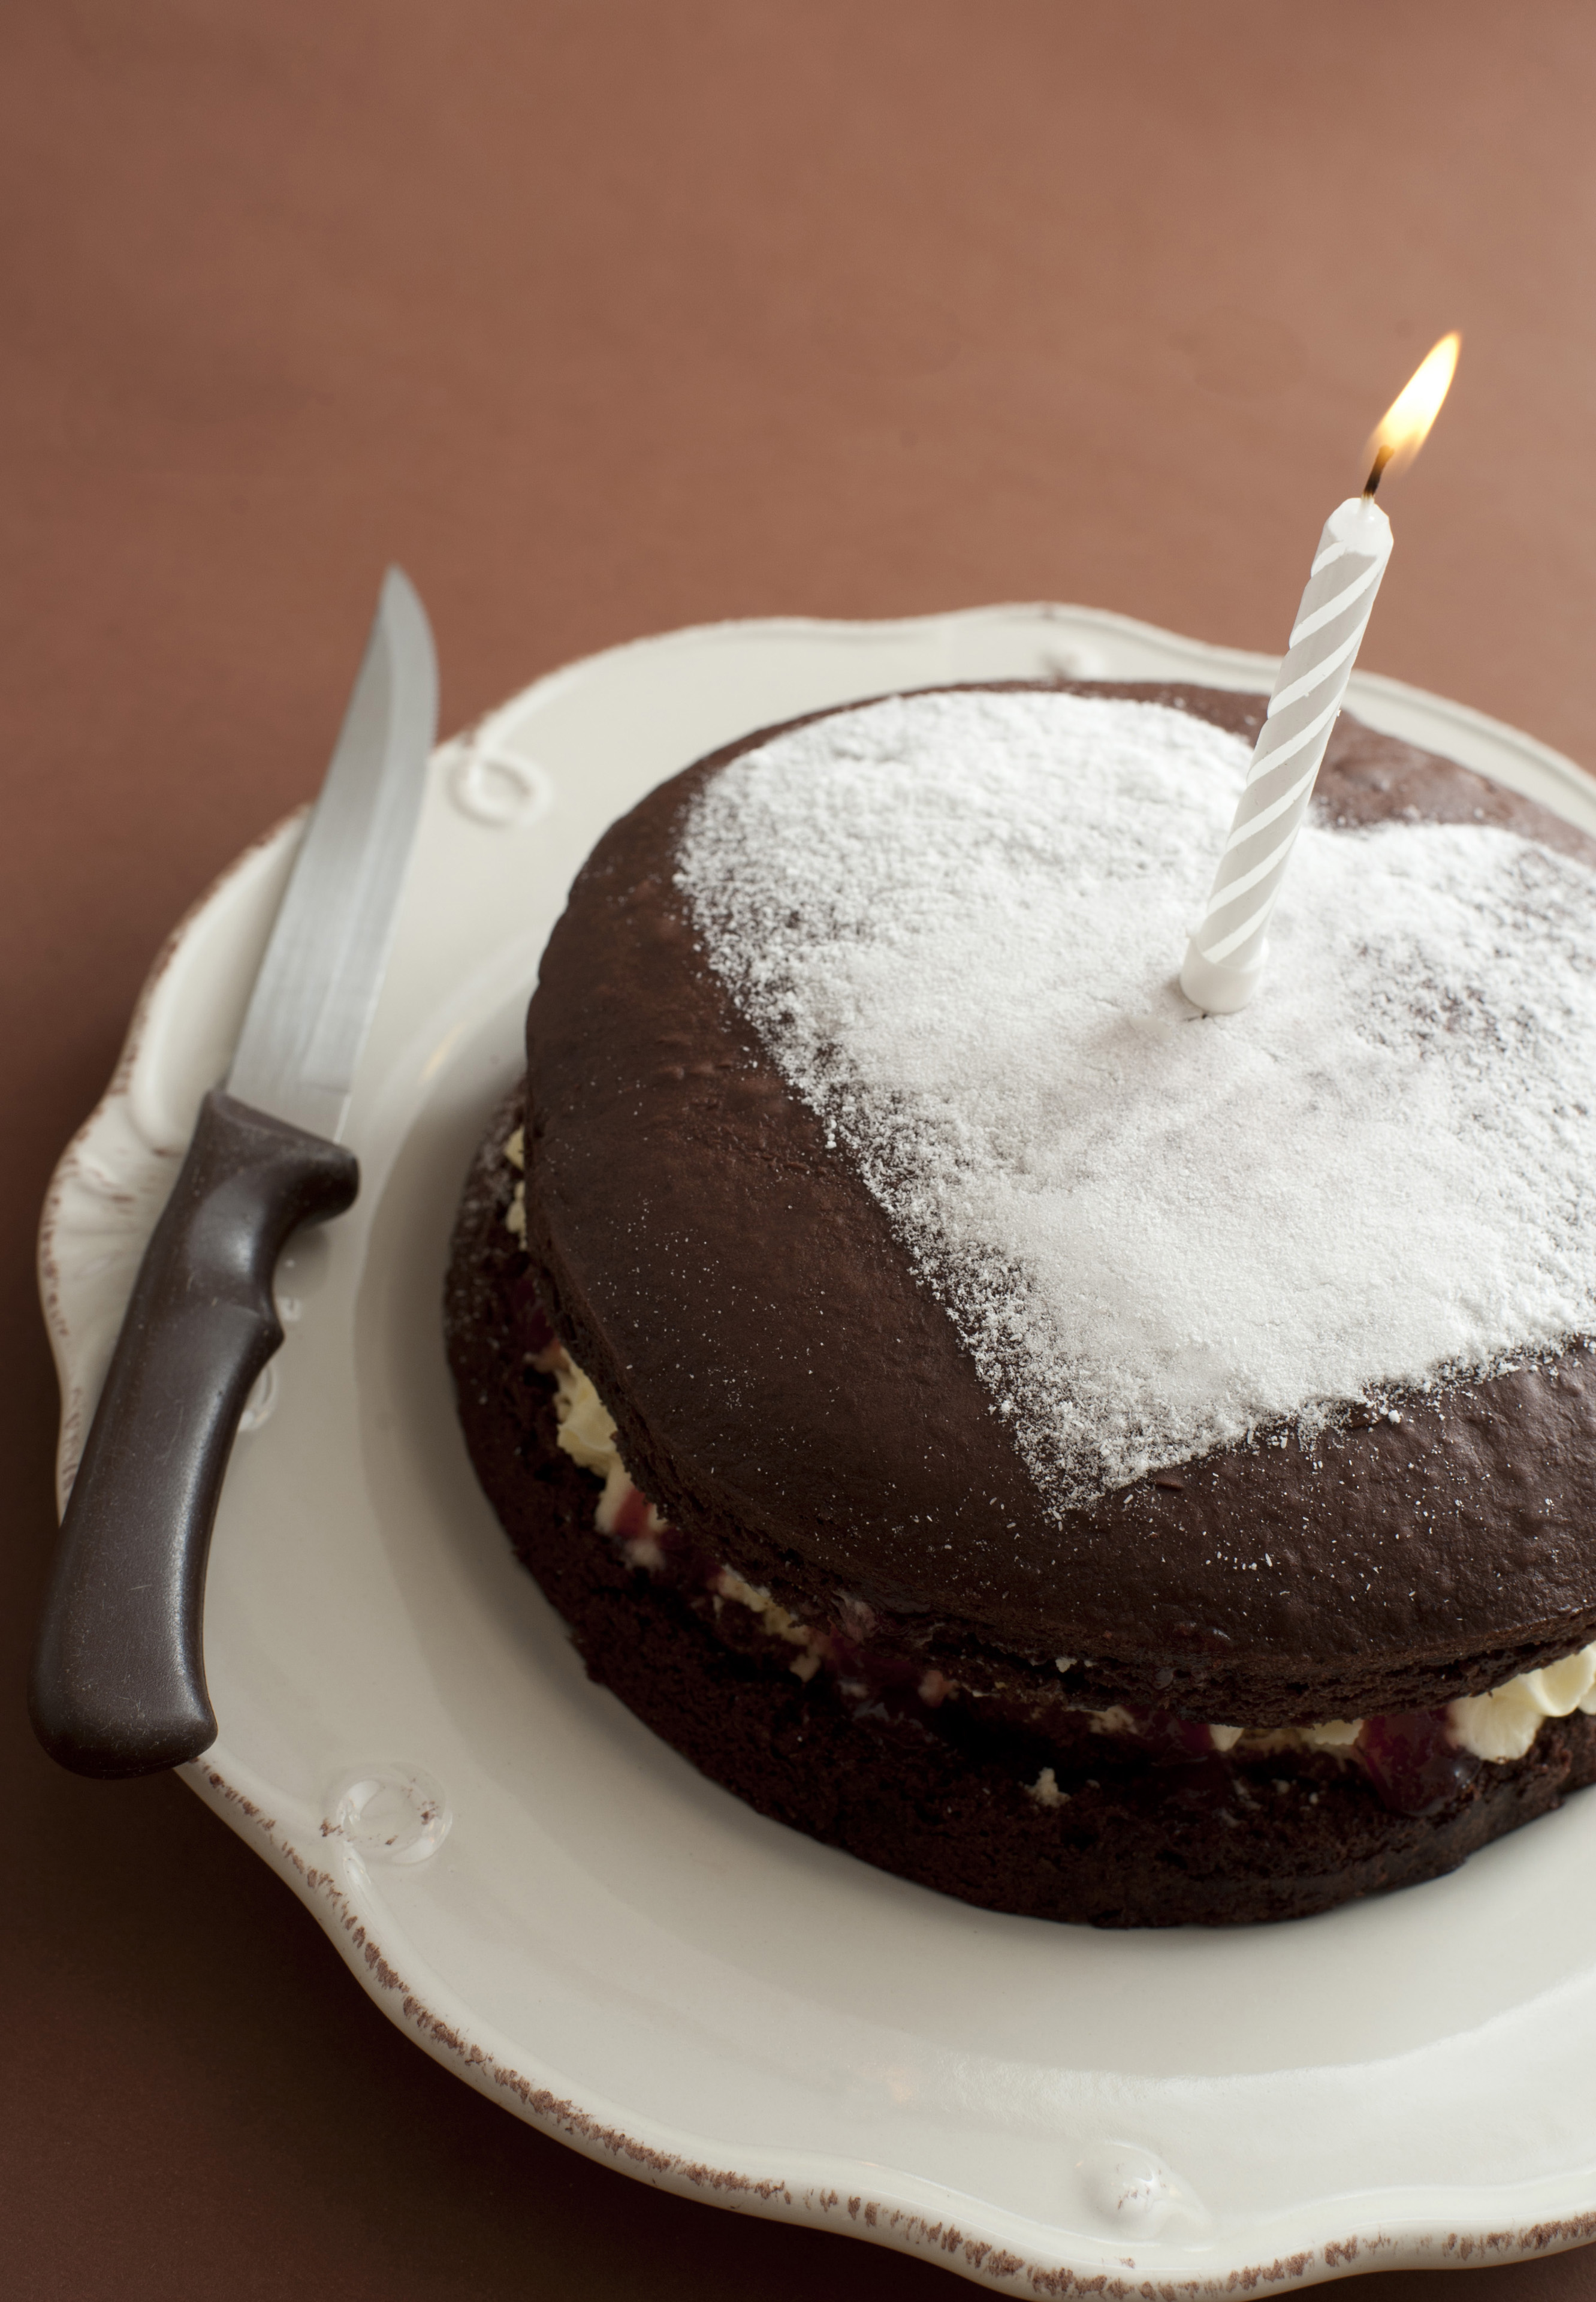 First anniversary cake with an icing sugar heart and single burning candle in a love and romance concept